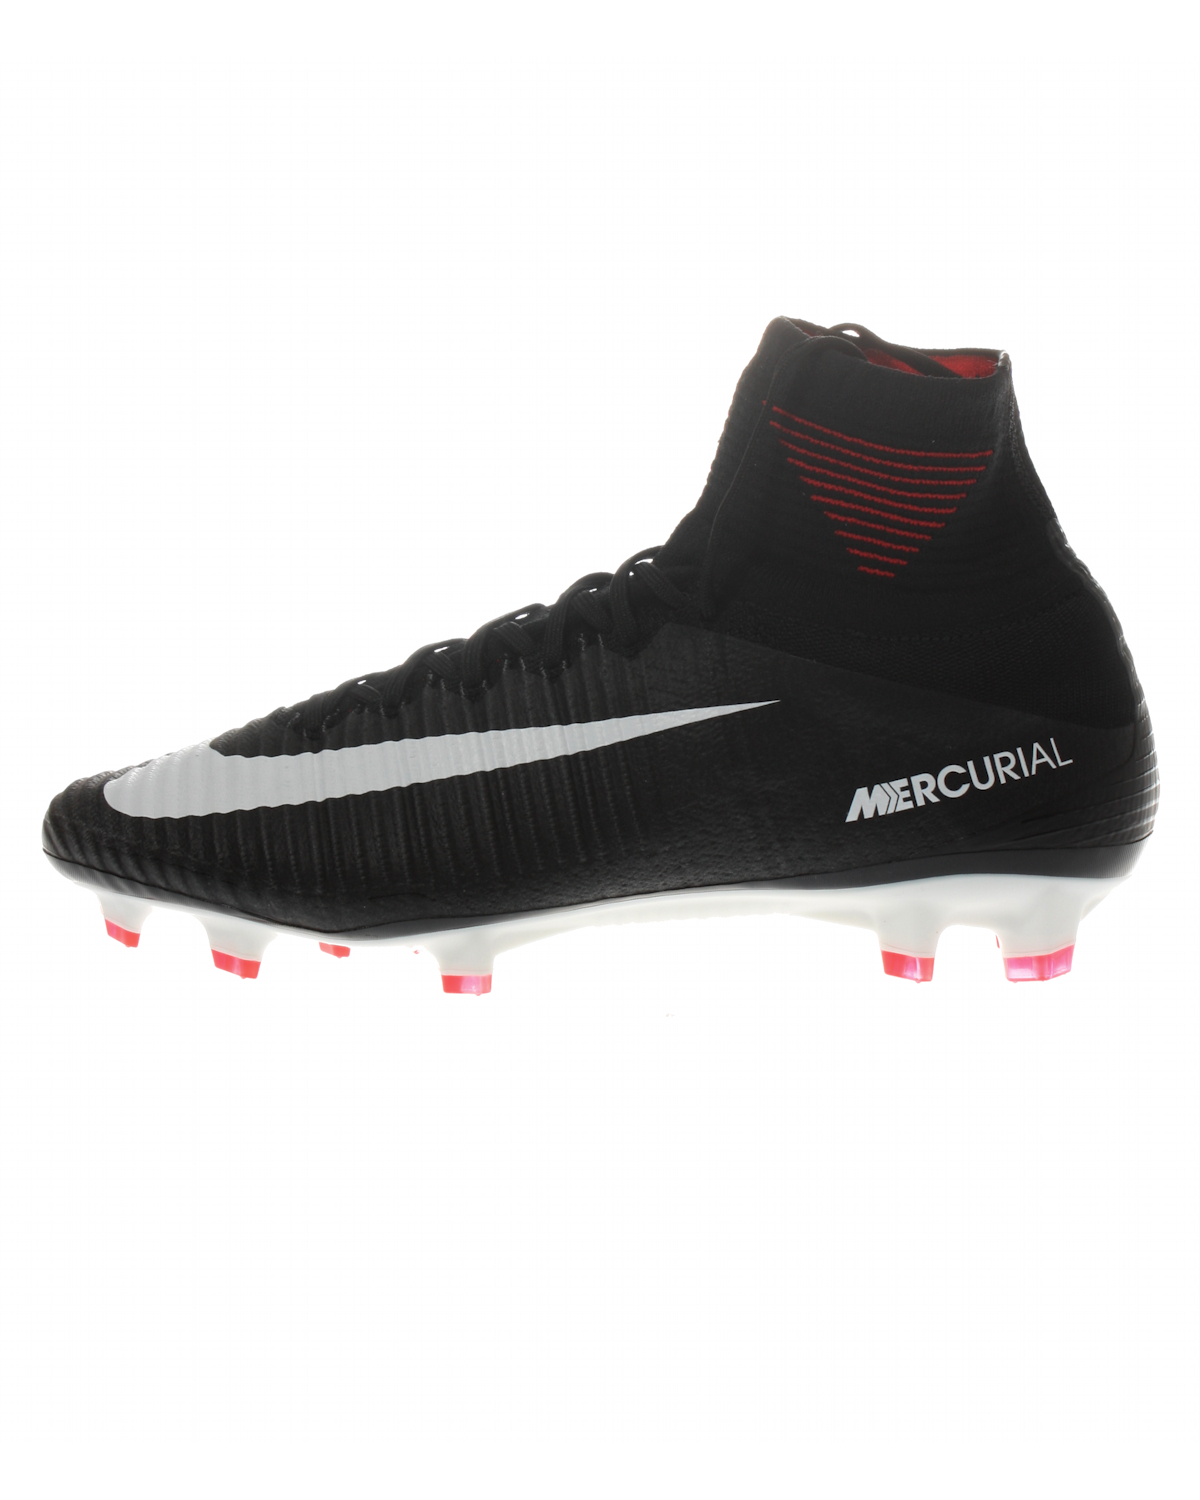 nike herren fu ballschuhe mercurial superfly v fg 831940. Black Bedroom Furniture Sets. Home Design Ideas